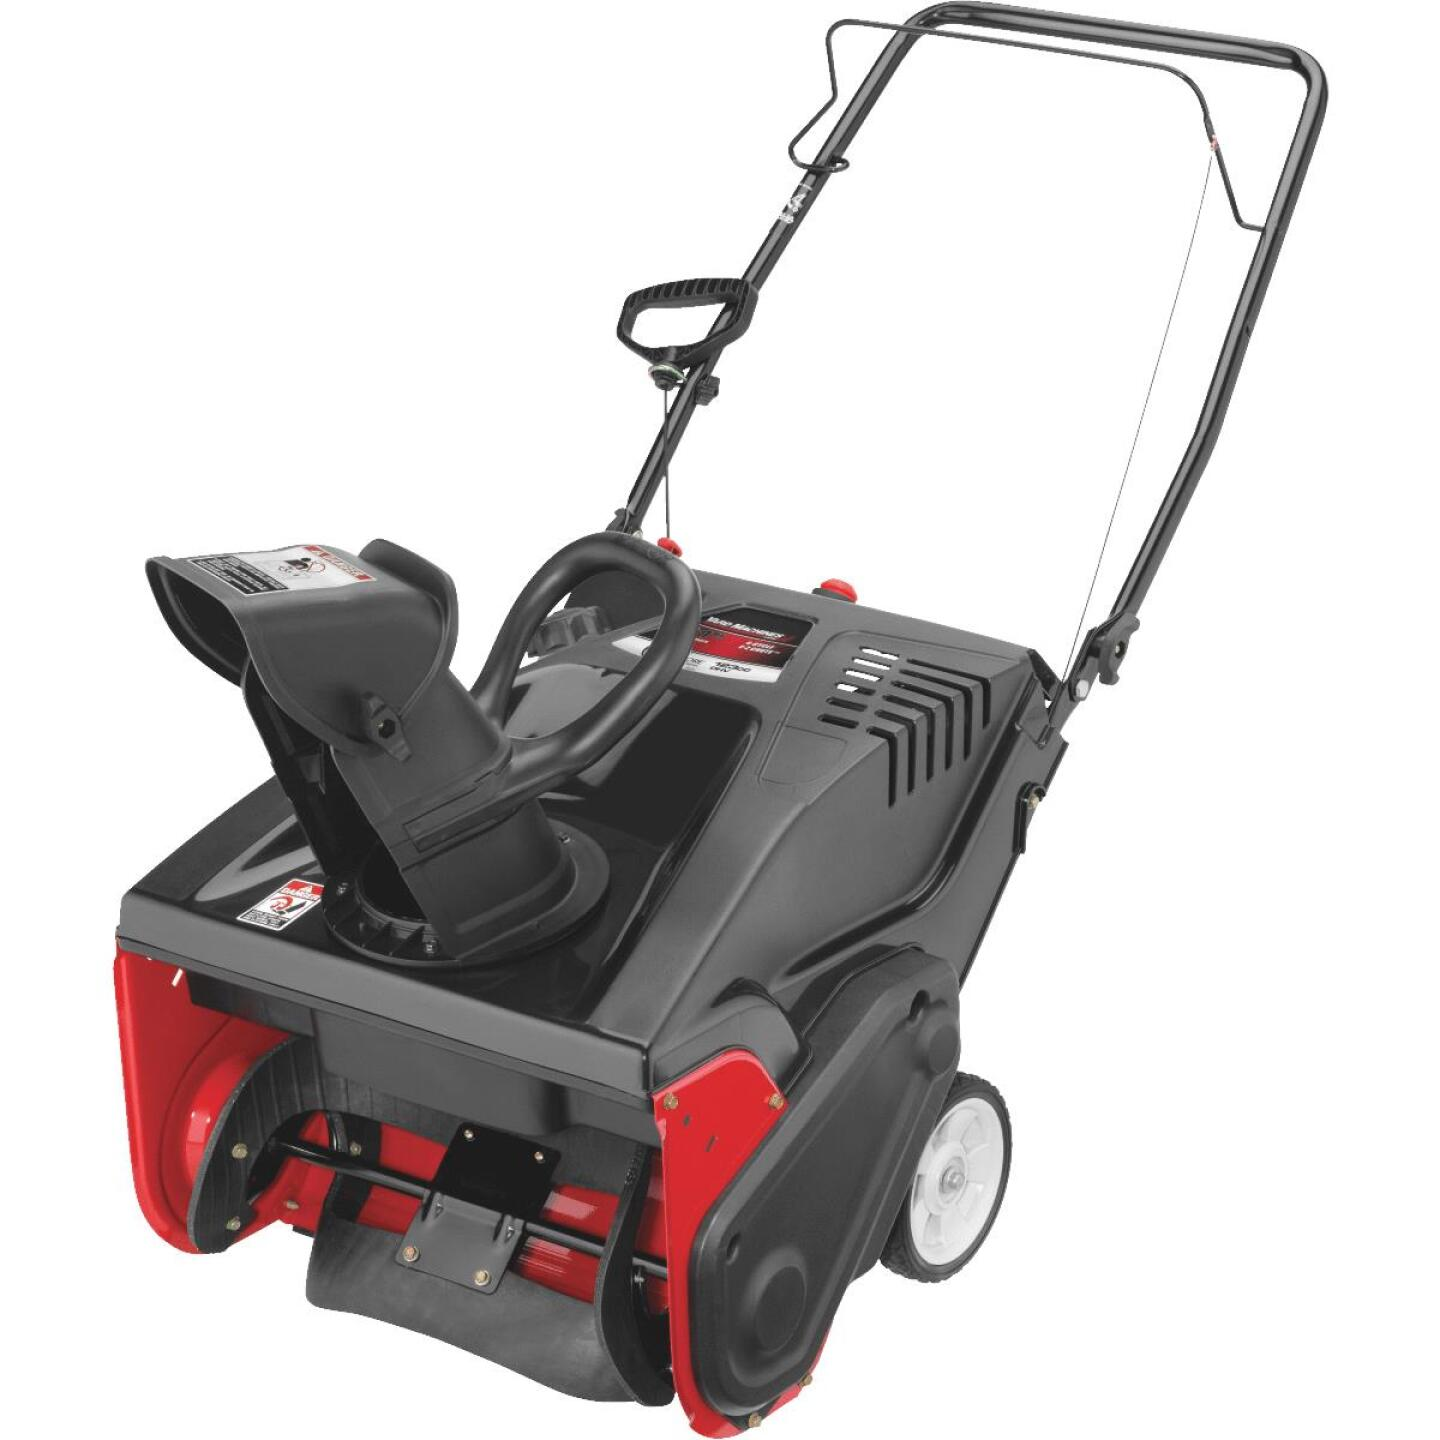 Yard Machines 21 In. 123cc Single-Stage Gas Snow Blower Image 2